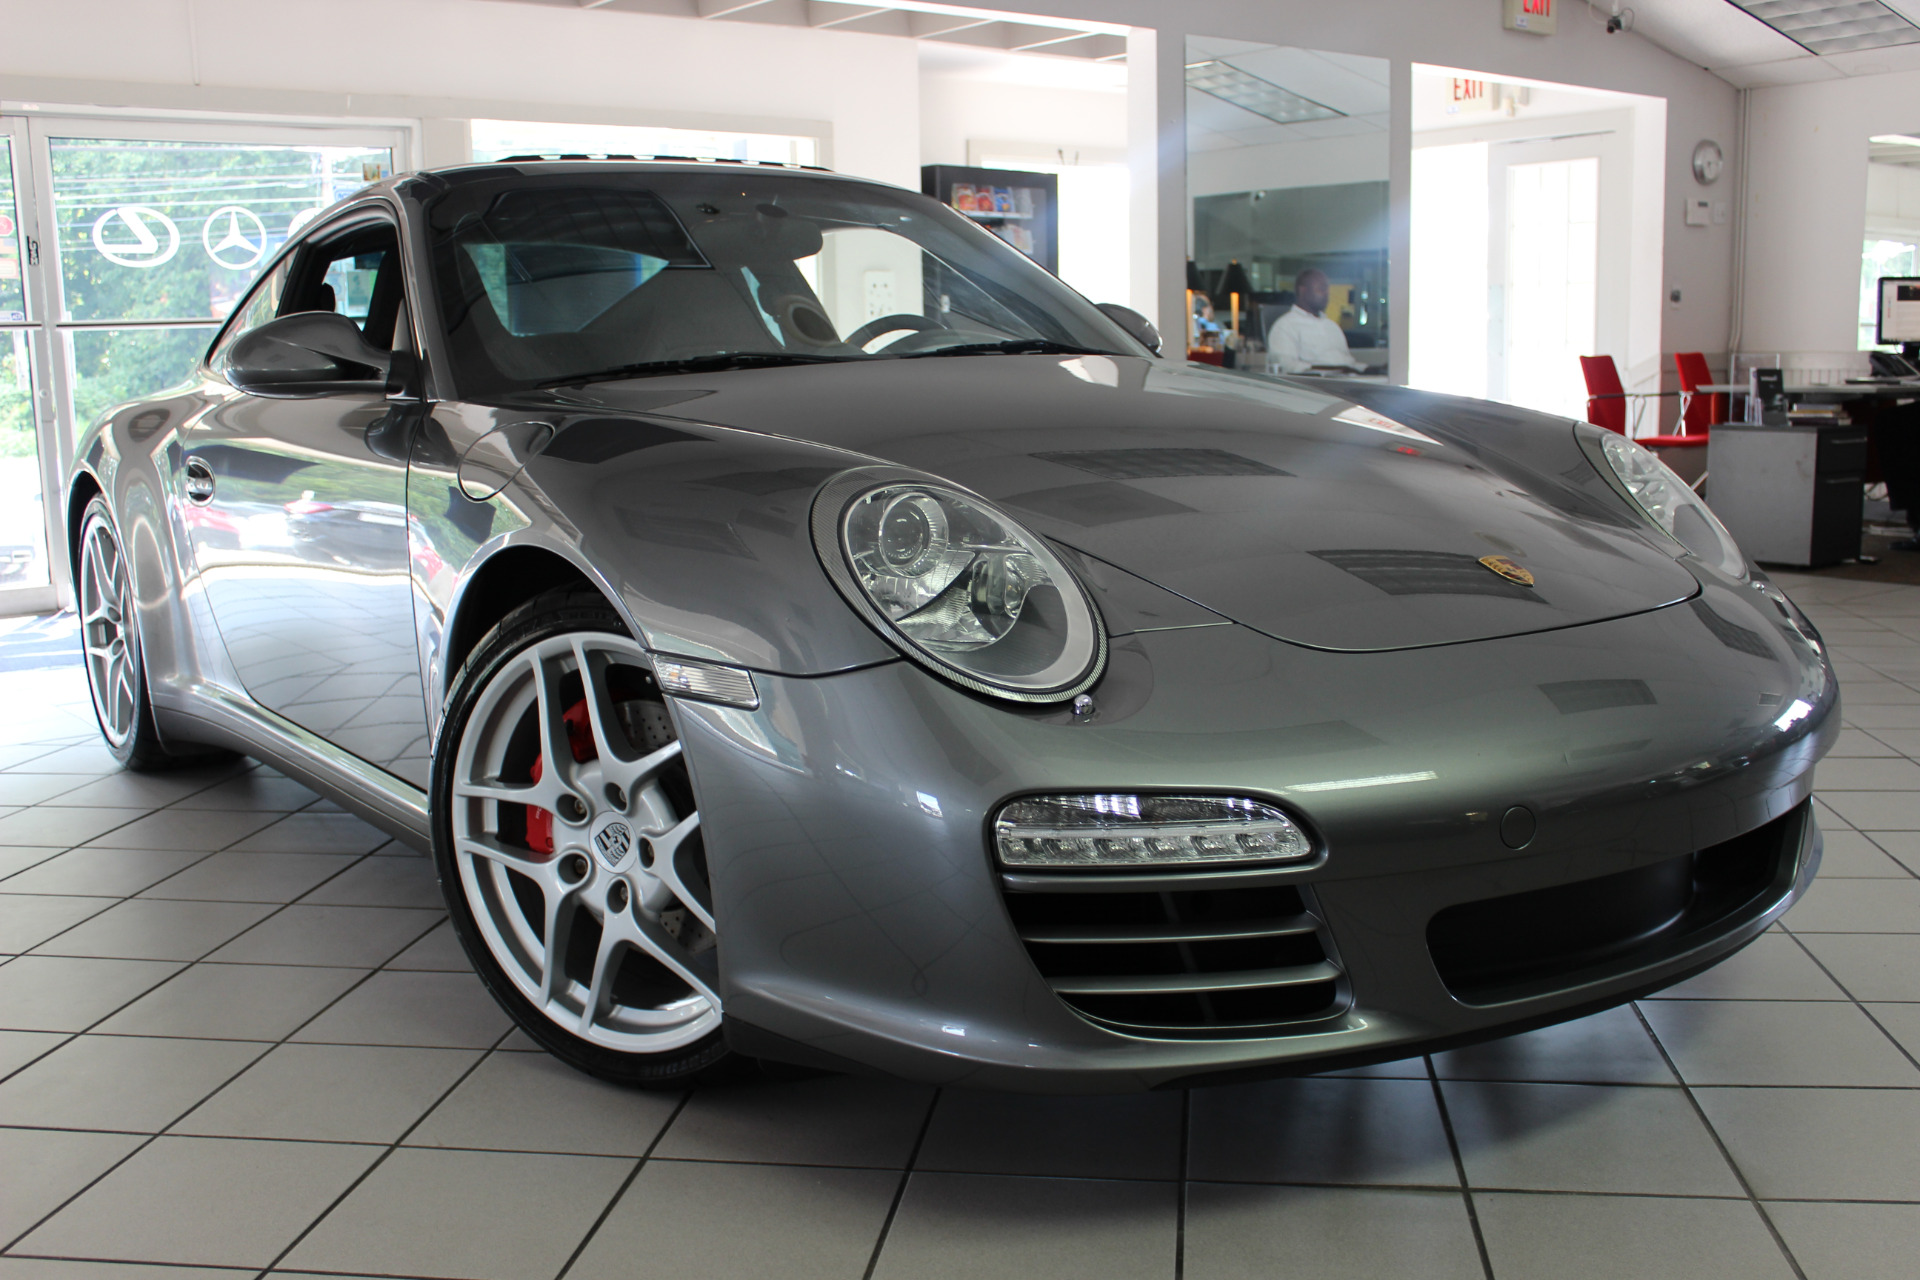 used 2009 porsche 911 carrera 4s marietta ga. Black Bedroom Furniture Sets. Home Design Ideas